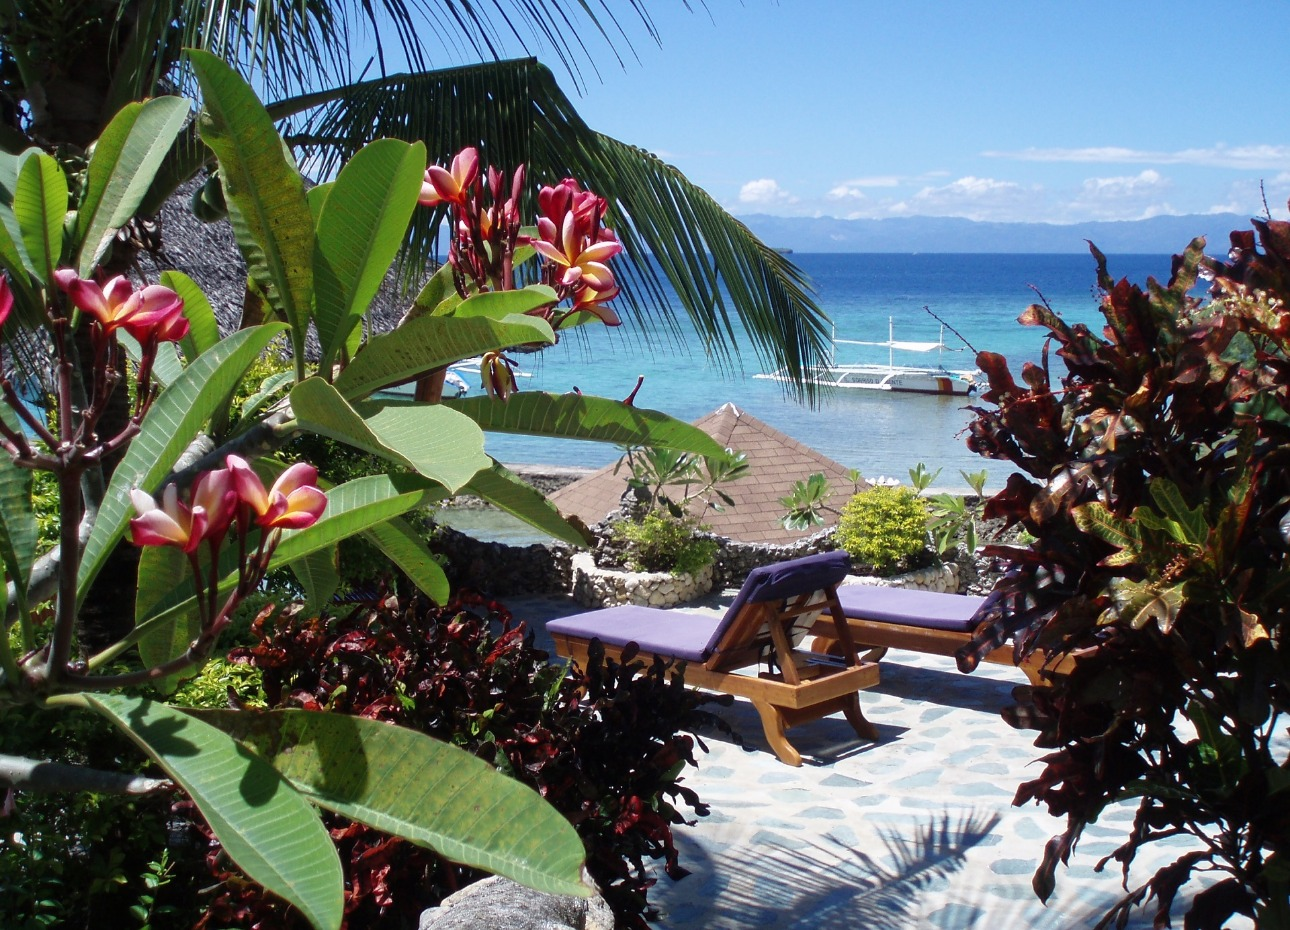 Philippines, Moalboal Magic Island, Dive Resort, Cottages, Loungers, image,